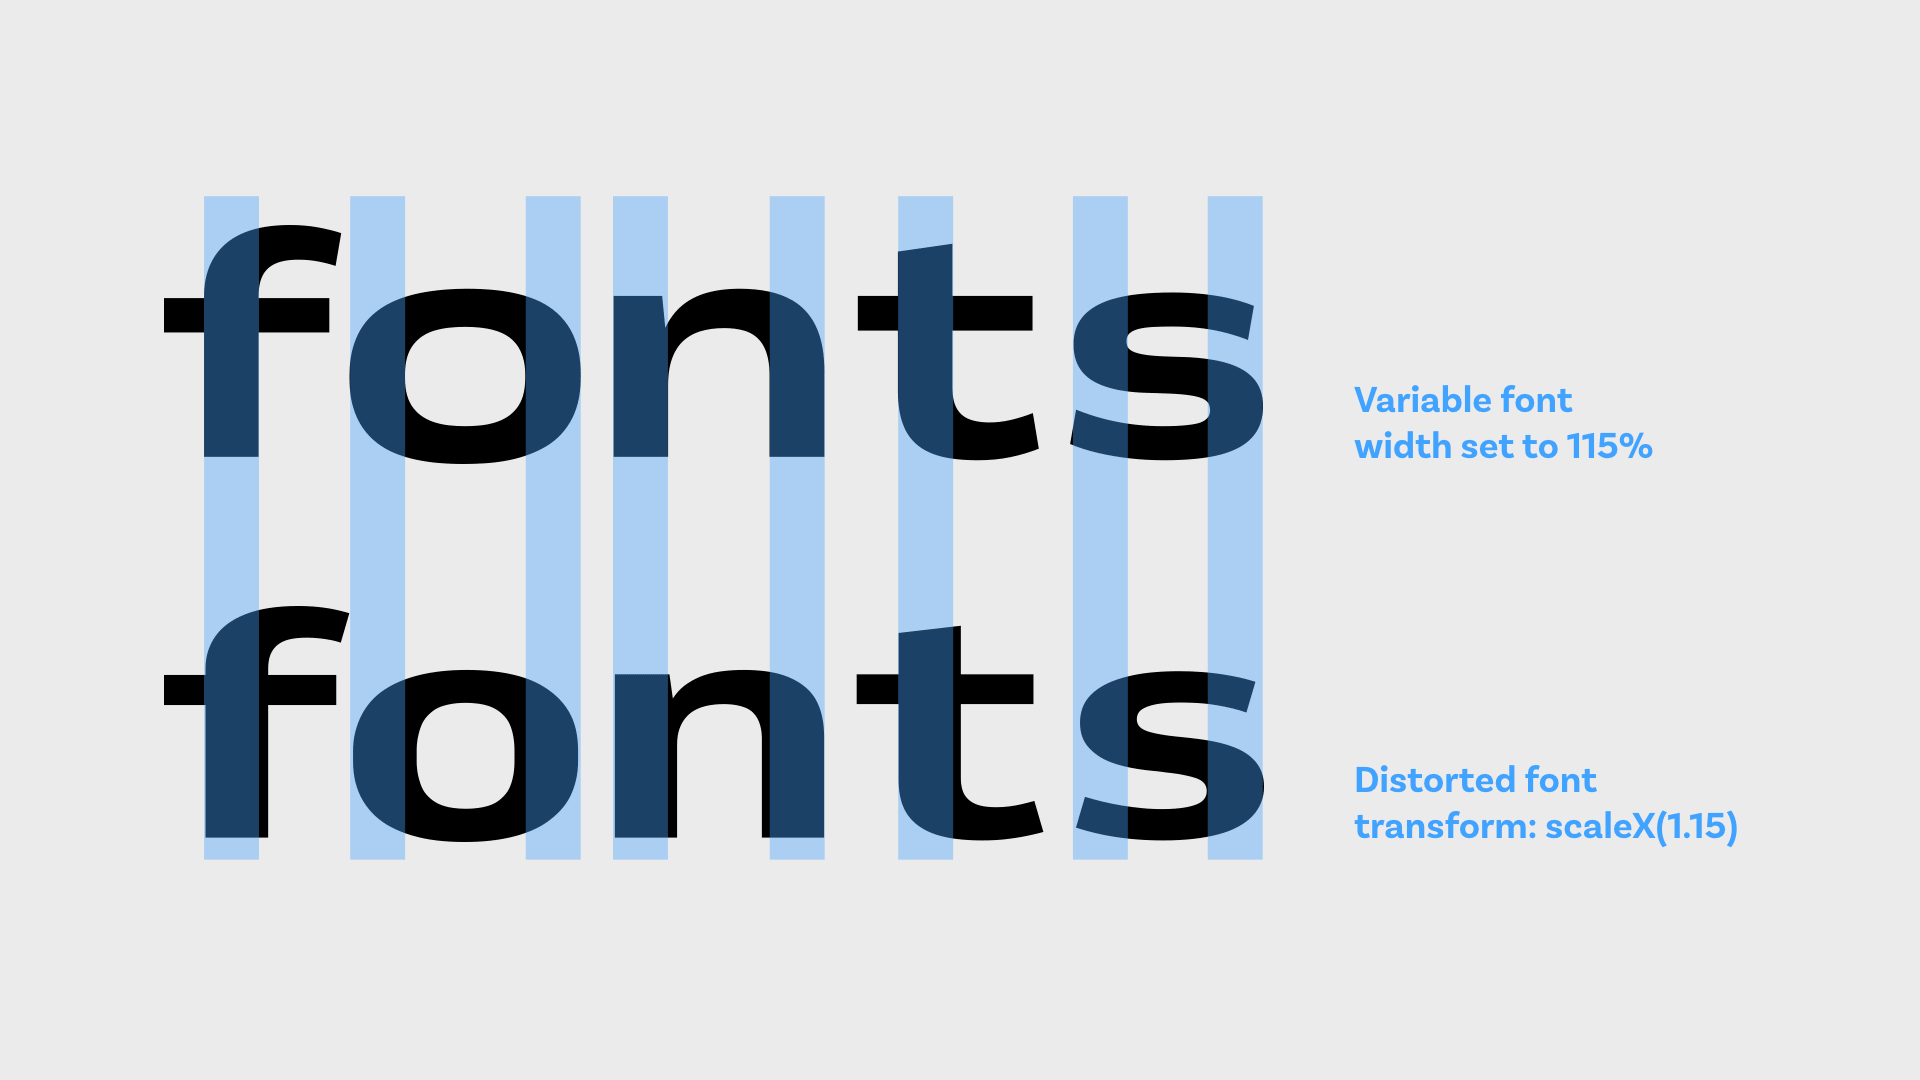 Variable font with a width of 115% vs. distorted font